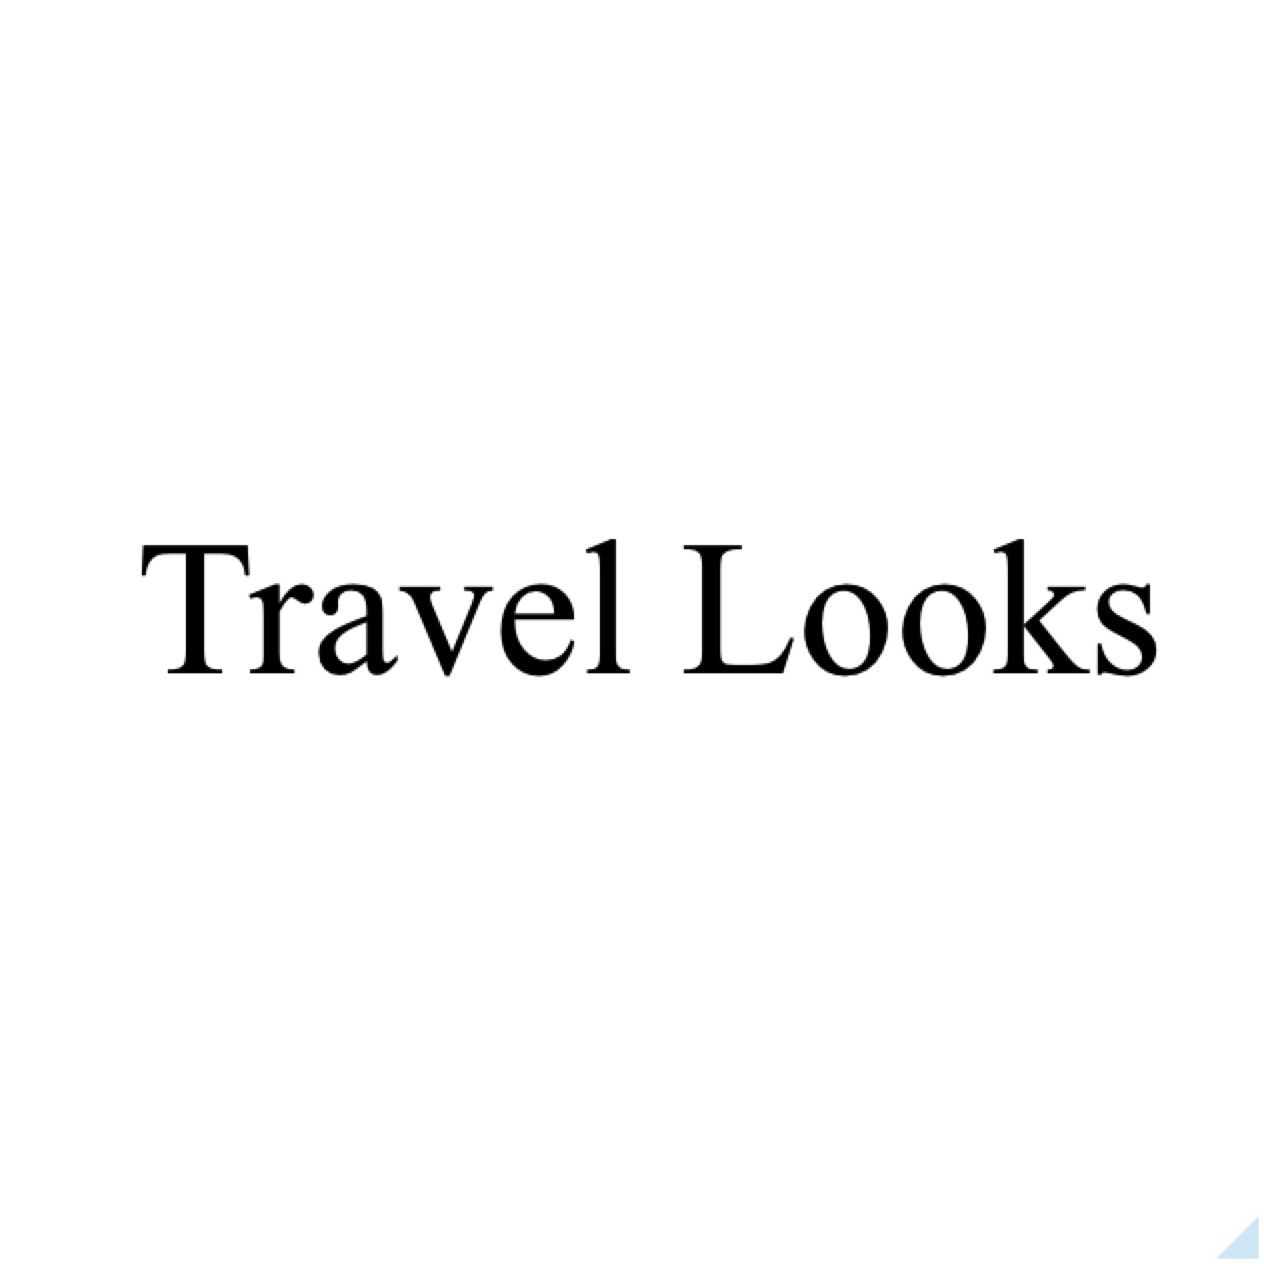 Travellooks